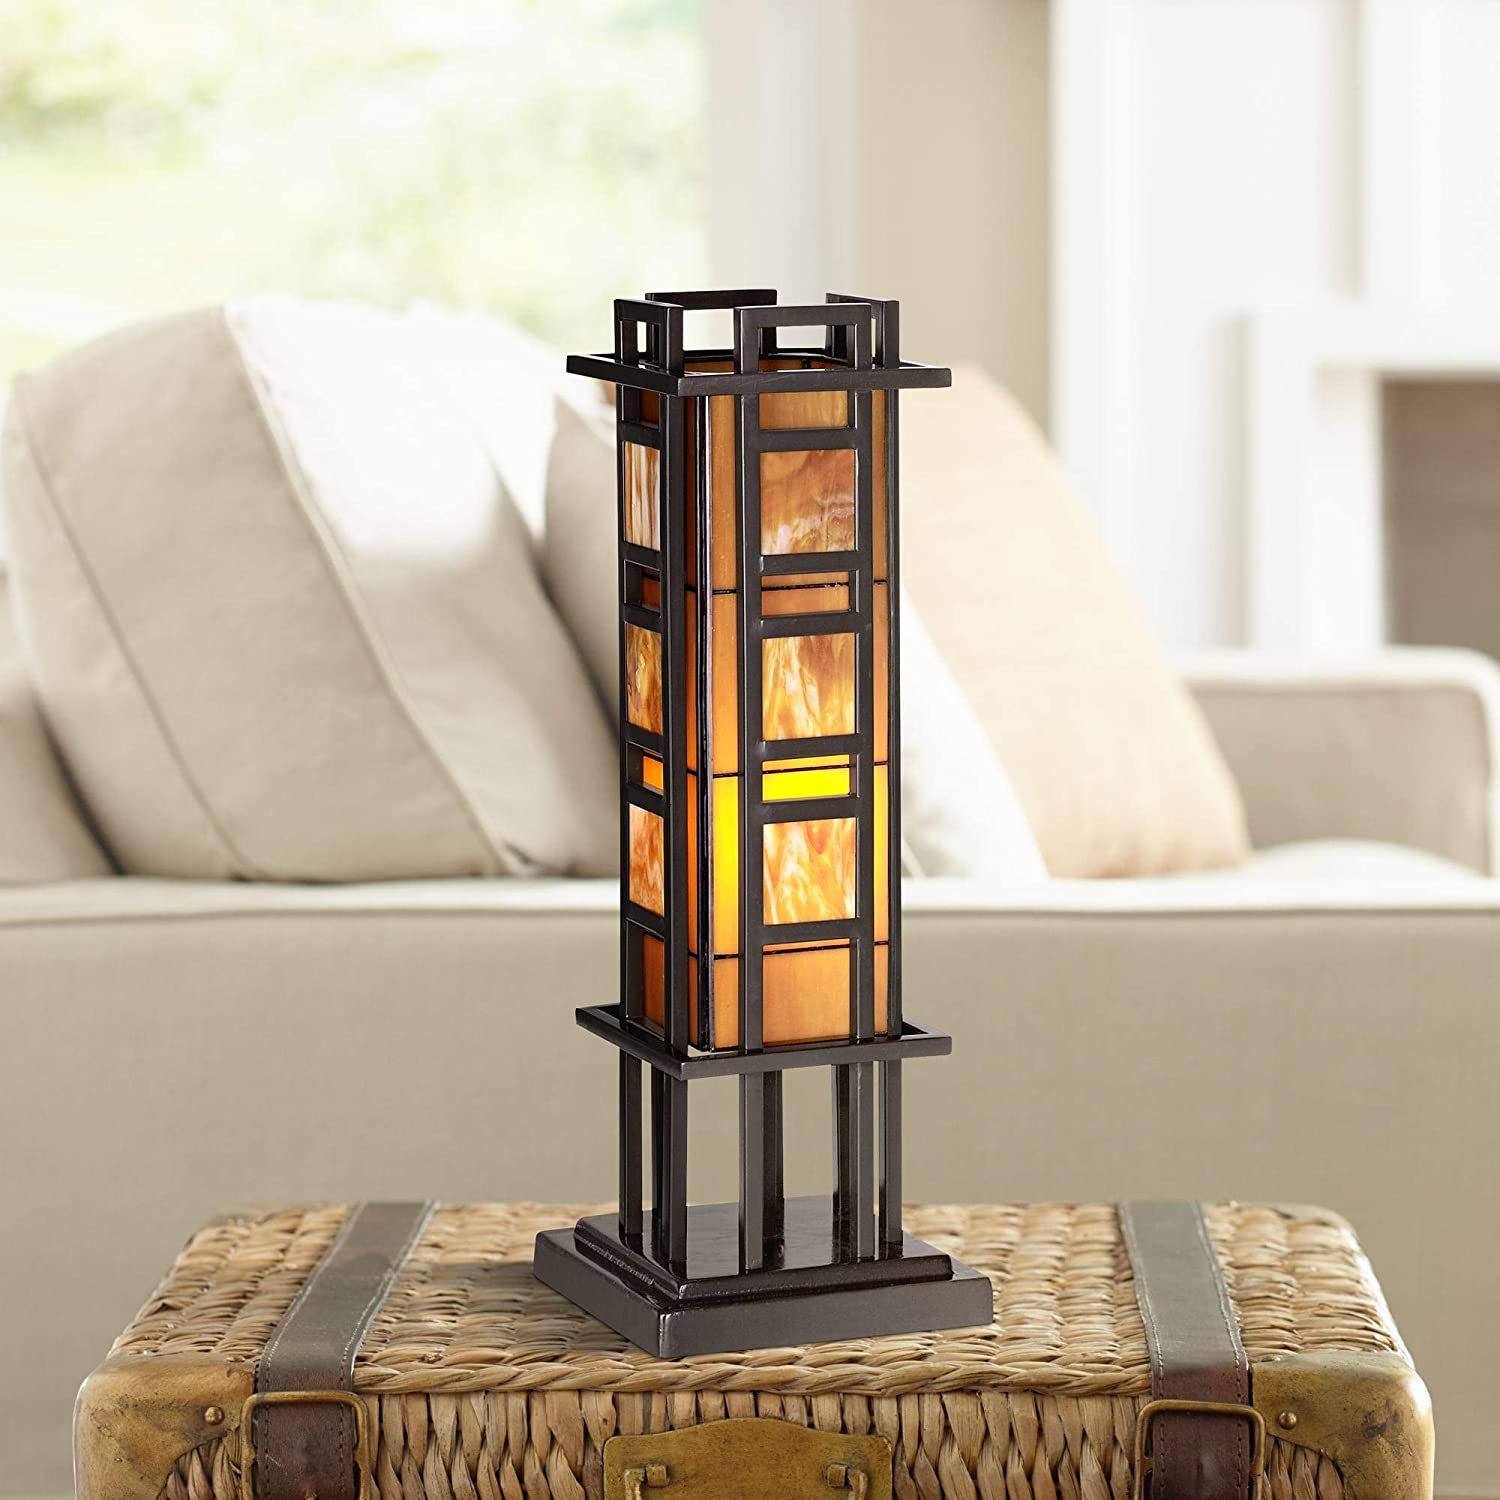 Prairie Mission Accent Table Lamp Bronze Iron Column Amber Stained Glass for Living Room Family Bedroom Office